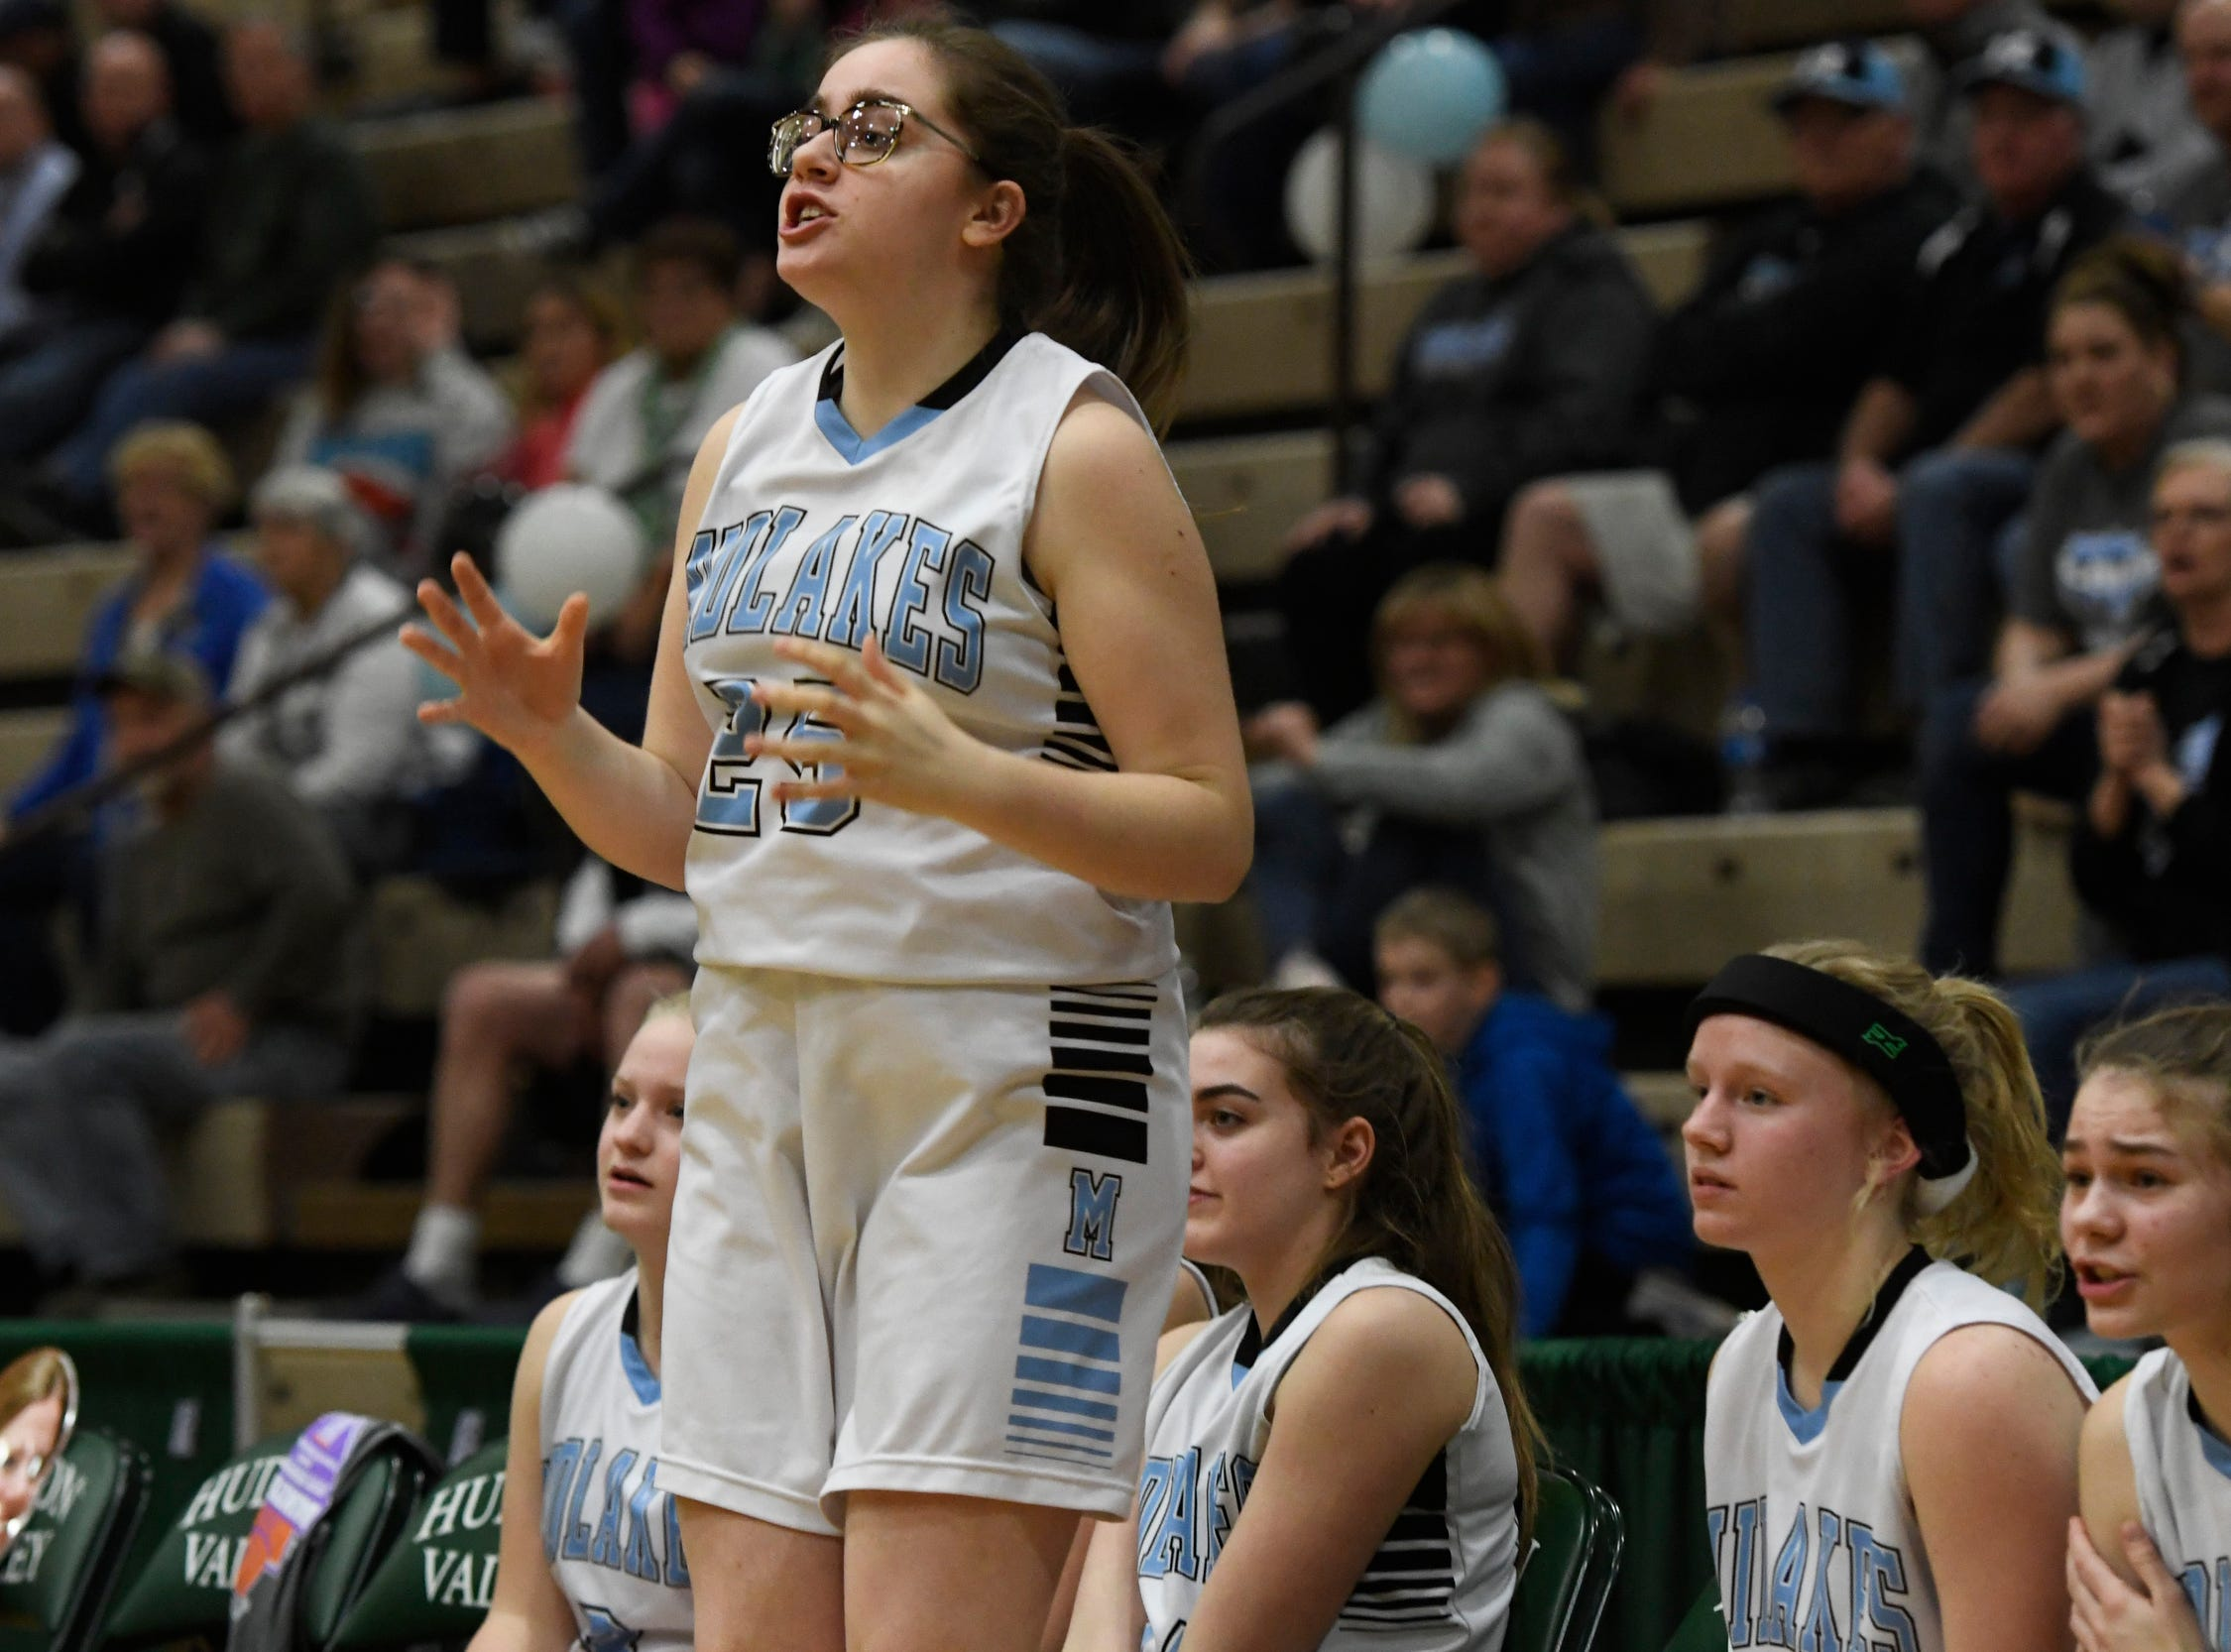 Midlakes's Marina Markovic jumps off the bench when a scoring opportunity presents itself to her teammates on the court during their Class B State Semifinal against Canton at Hudson Valley Community College in Troy, N.Y. on Friday, Mar. 15, 2019.